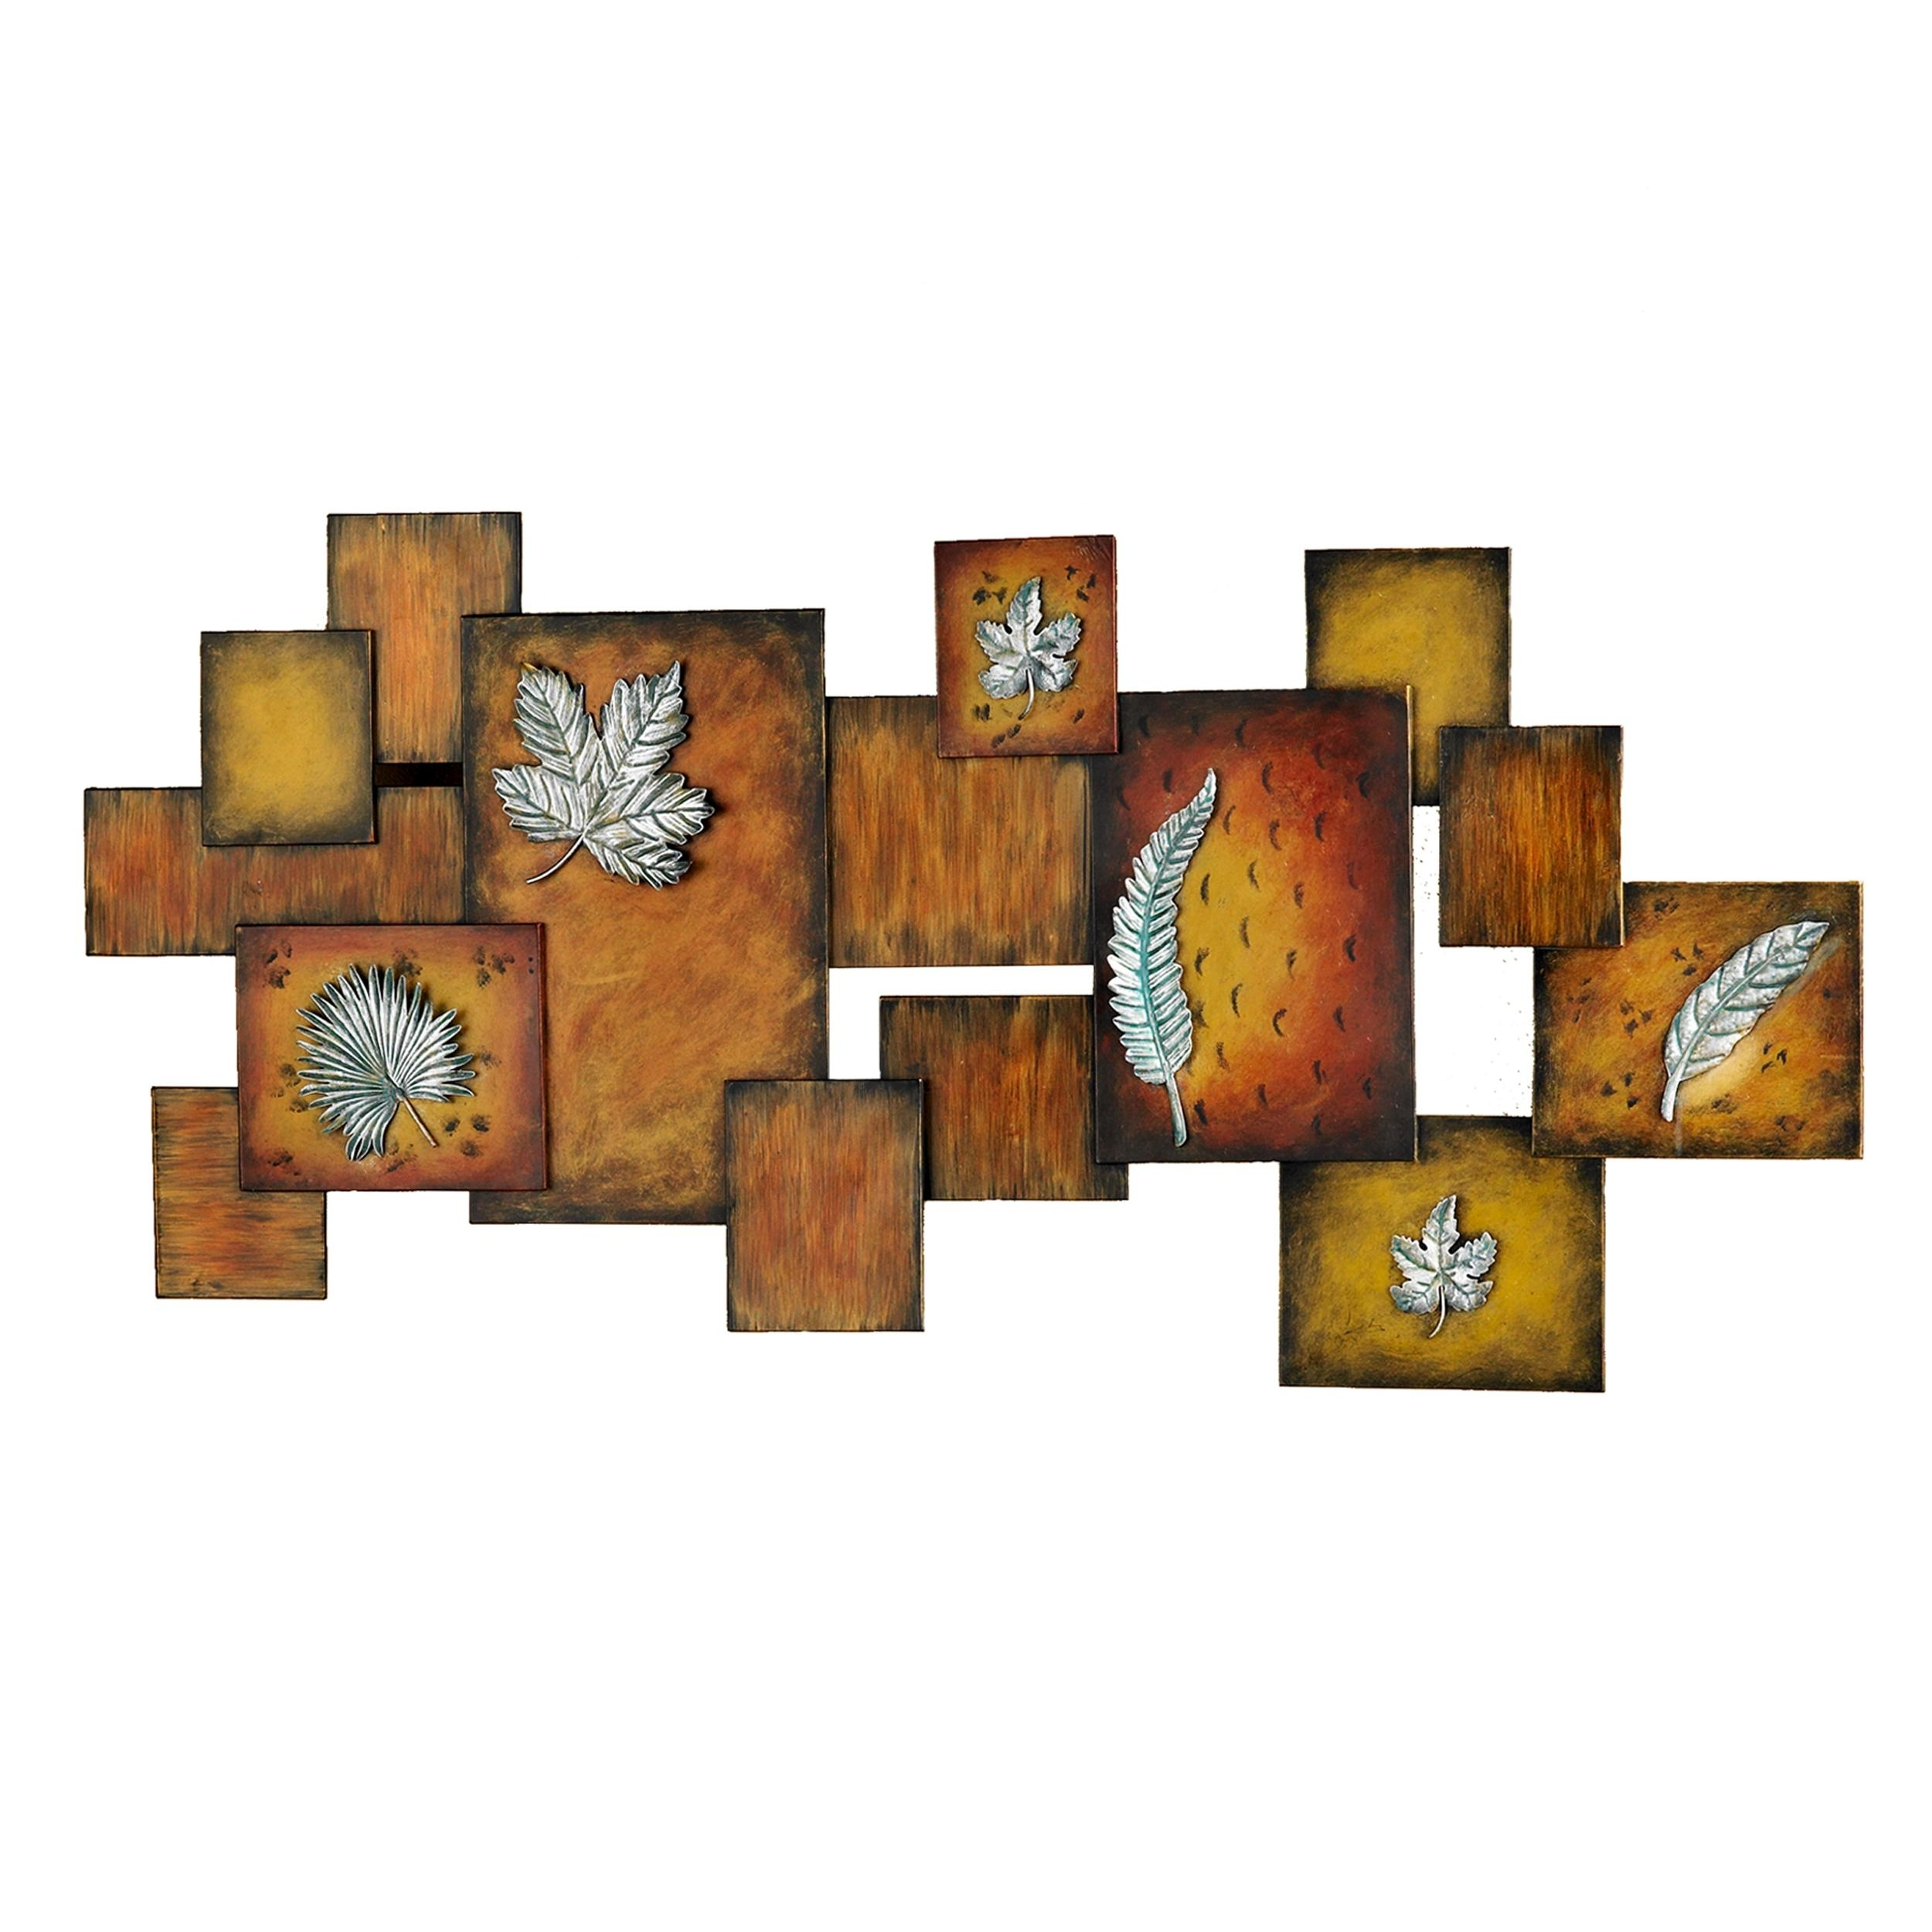 Wall Decor : Canvas Artwork 3 Piece Art Set 3 Piece Canvas Throughout Best And Newest Earth Tones Wall Accents (View 11 of 15)